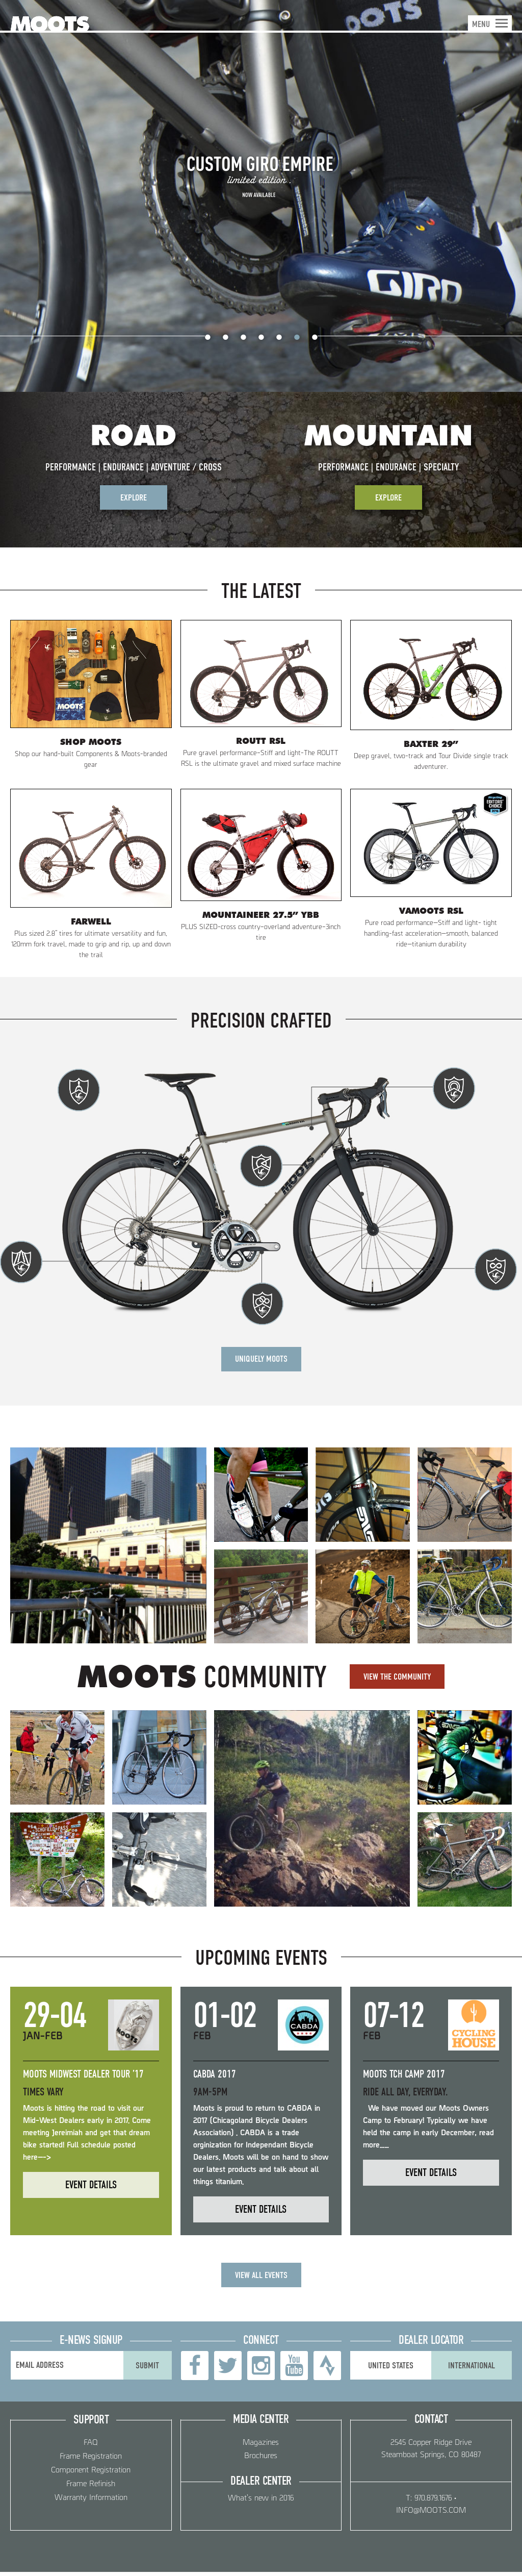 MOOTS Competitors, Revenue and Employees - Owler Company Profile